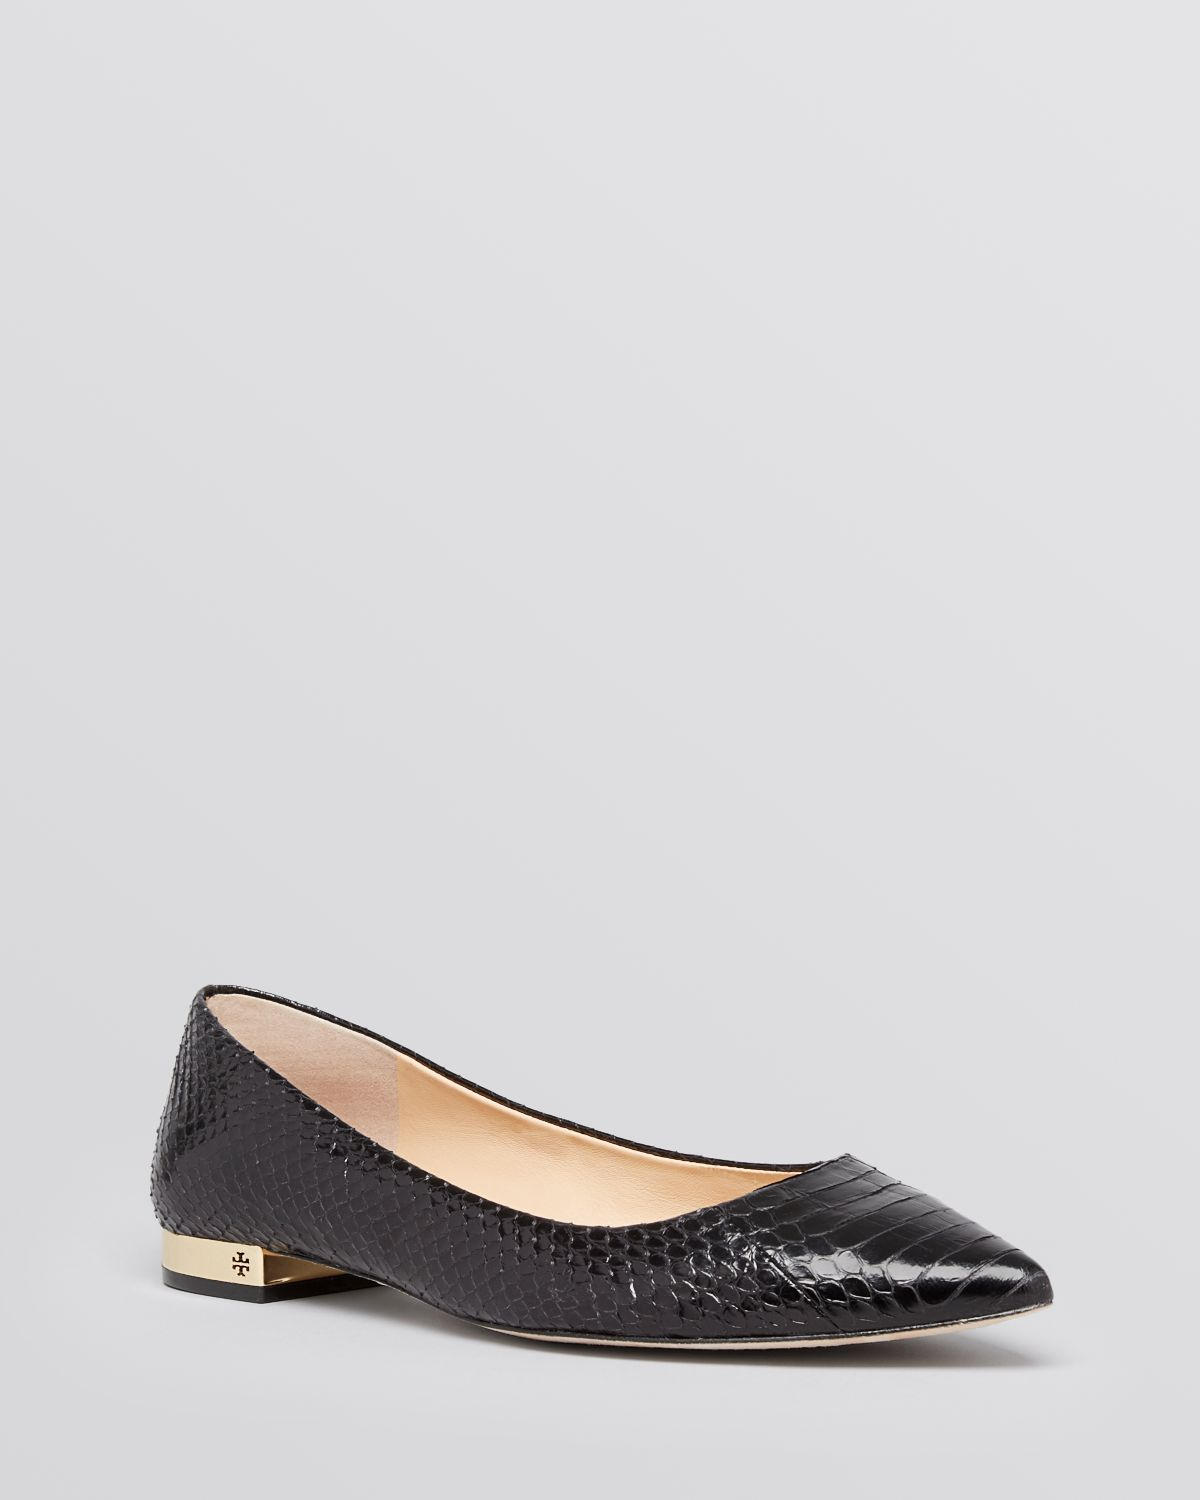 afe509fae9b1 ... release date tory burch pointed toe flats bedford snakeskin in black  lyst 4e1c1 3af1a ...